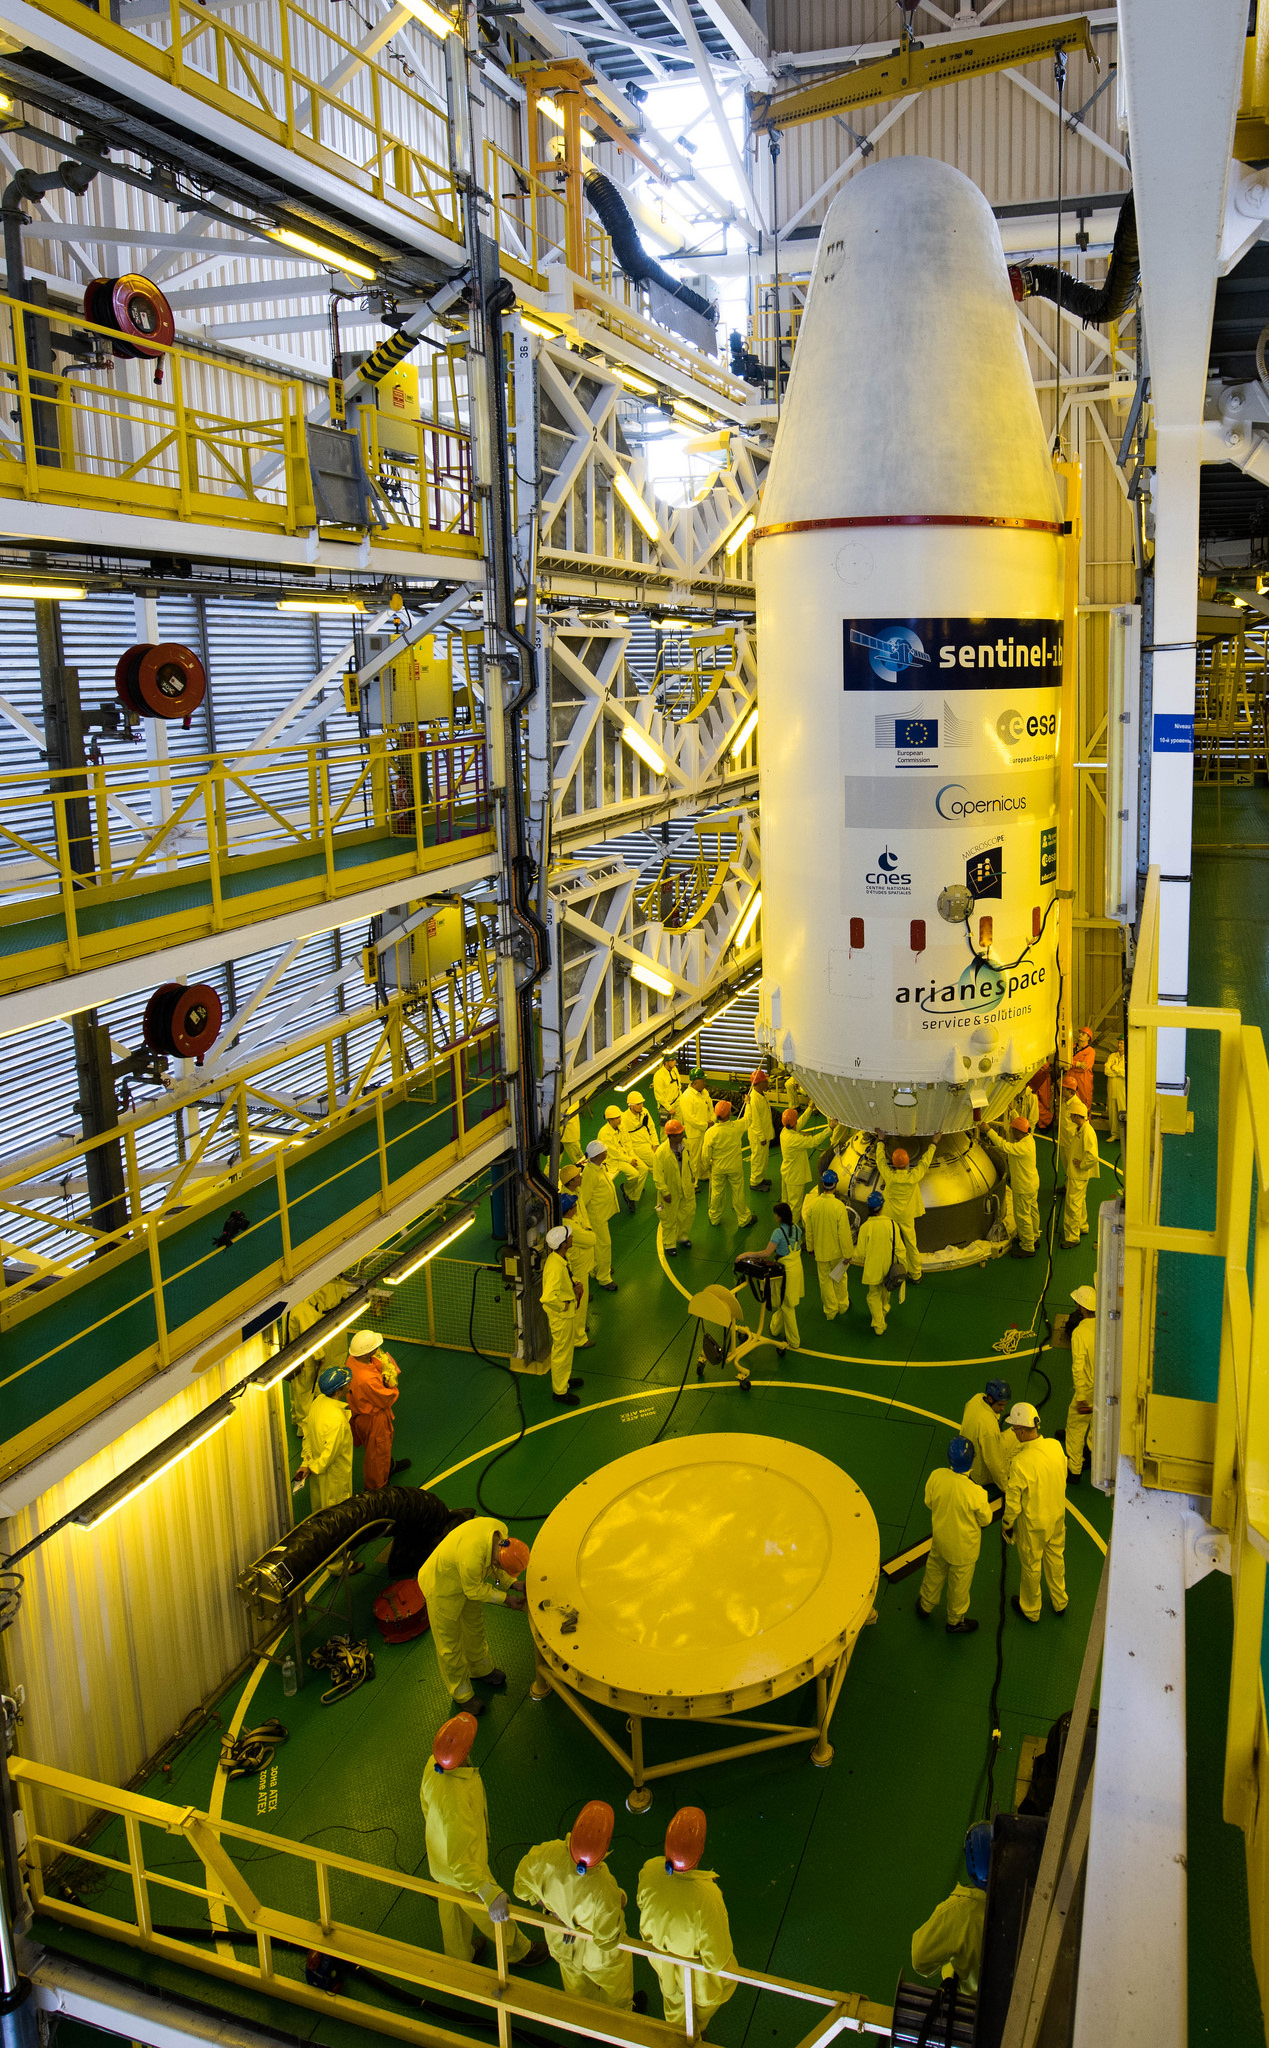 The payloads are mated to the Soyuz rocket's third stage inside the launch pad mobile gantry. Credit: ESA–Manuel Pedoussaut, 2016